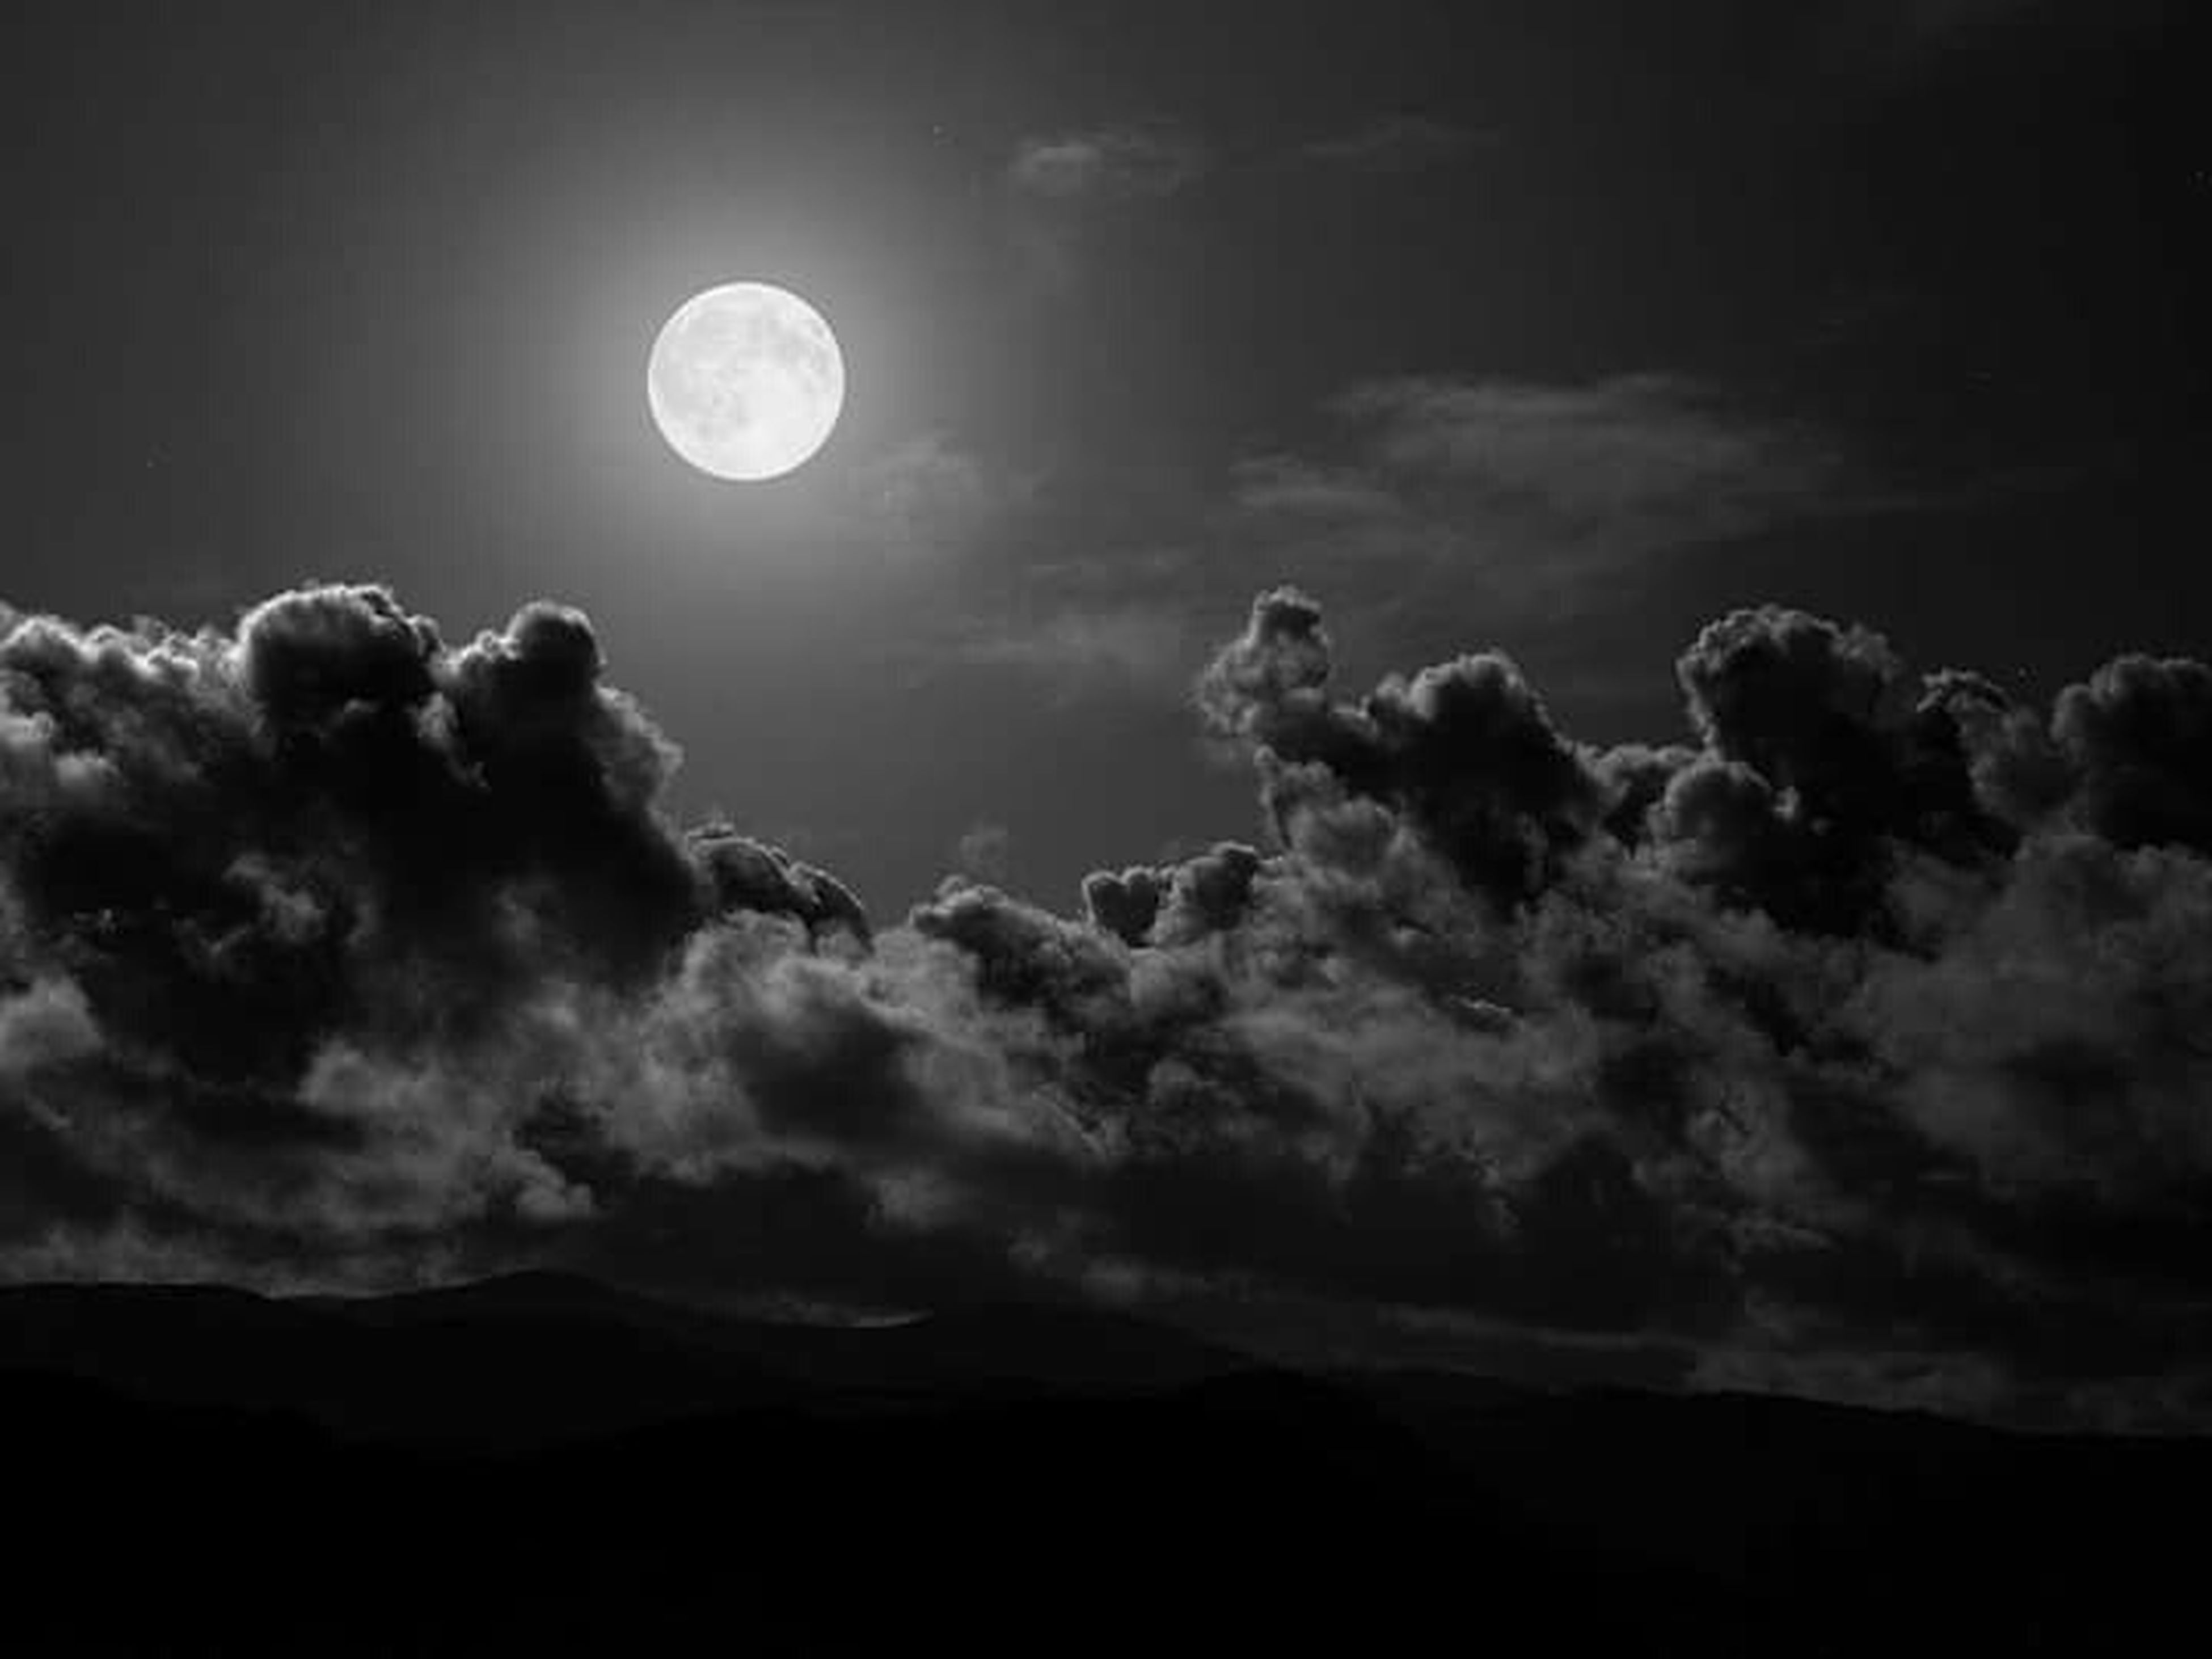 moon, scenics, tranquil scene, sky, tranquility, beauty in nature, night, full moon, astronomy, nature, idyllic, majestic, low angle view, dark, cloud - sky, silhouette, circle, planetary moon, dusk, landscape